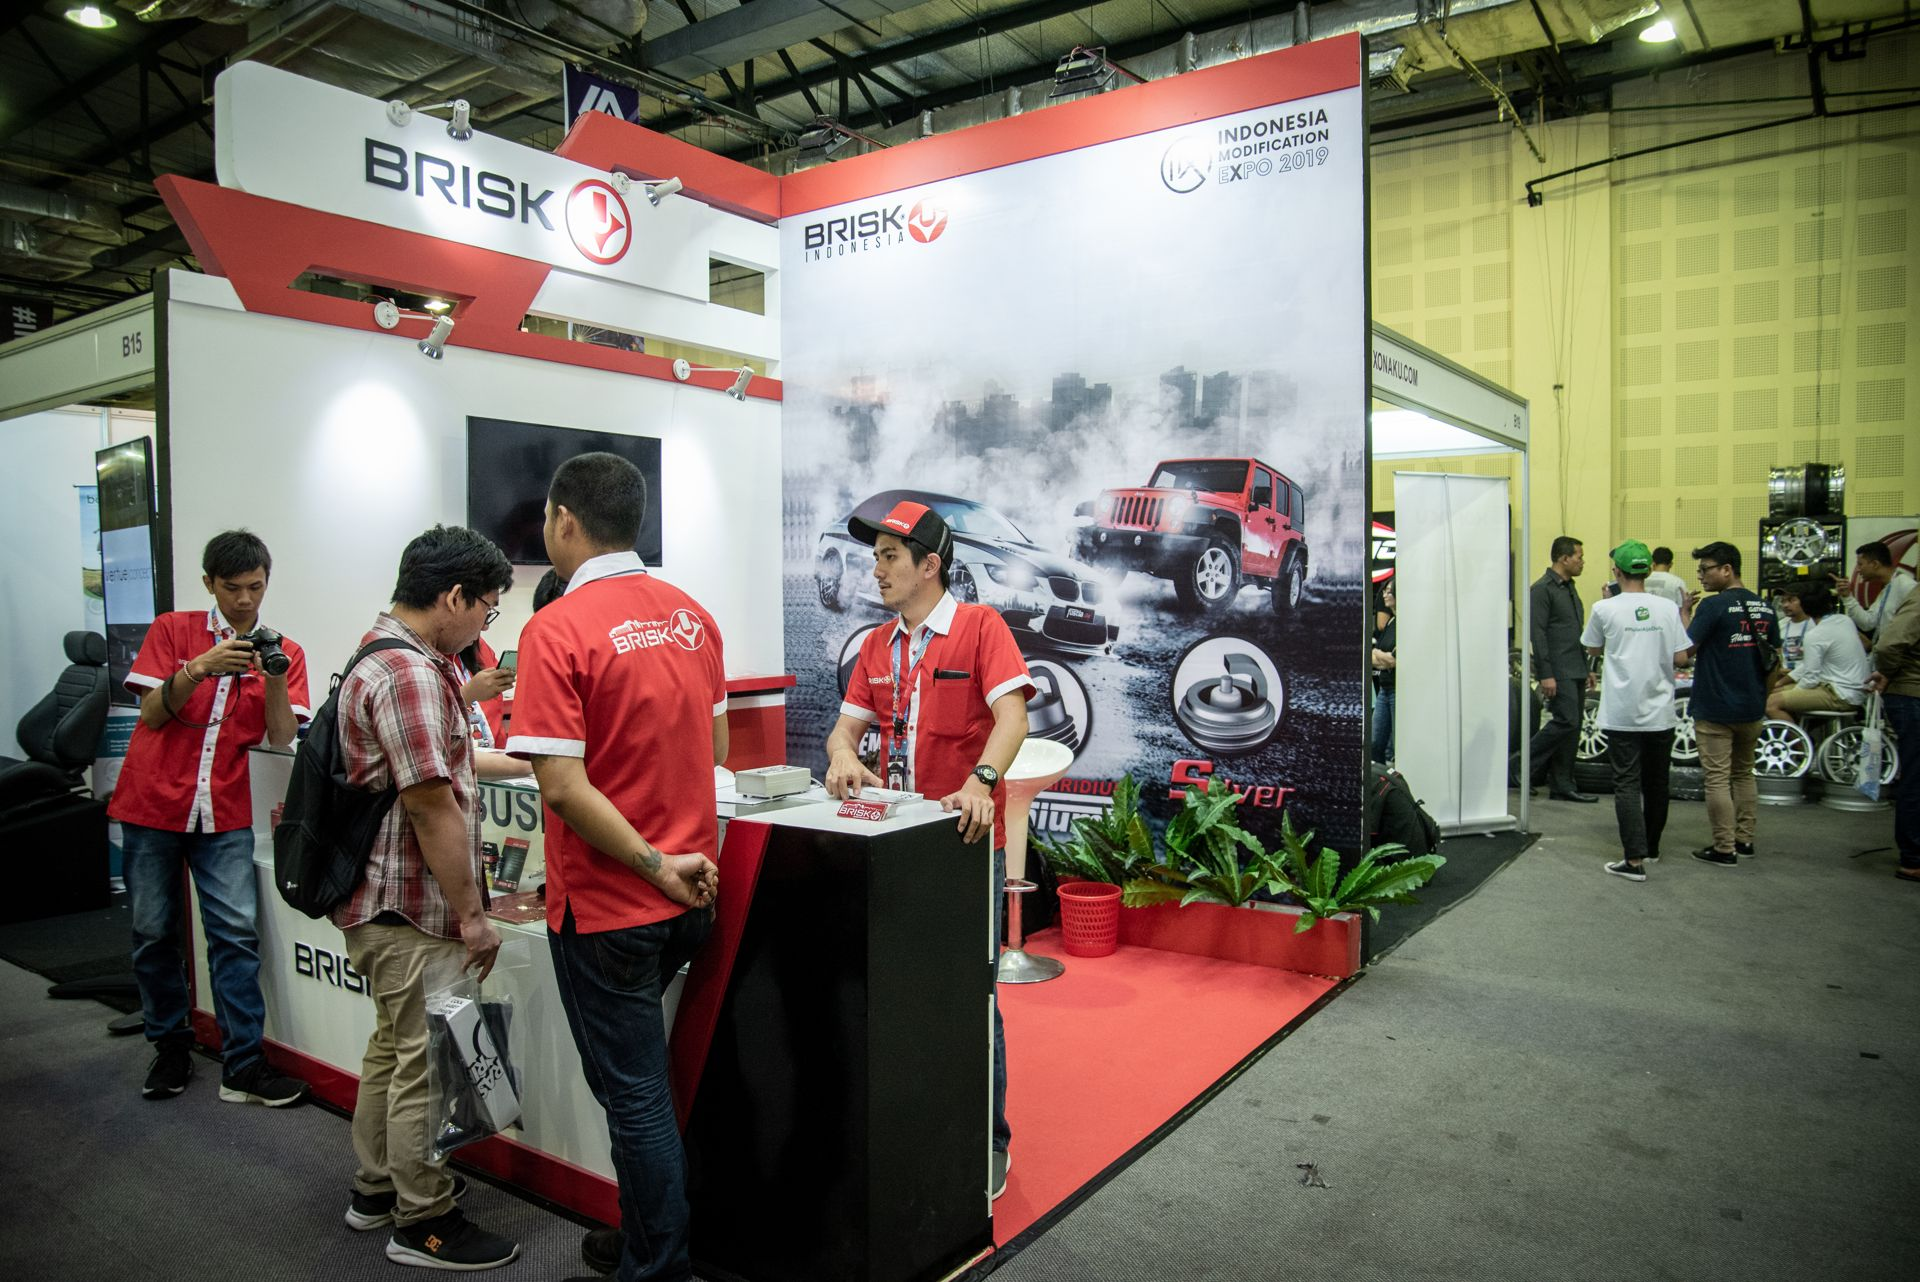 Imx aftermarket expo 2019 (39)